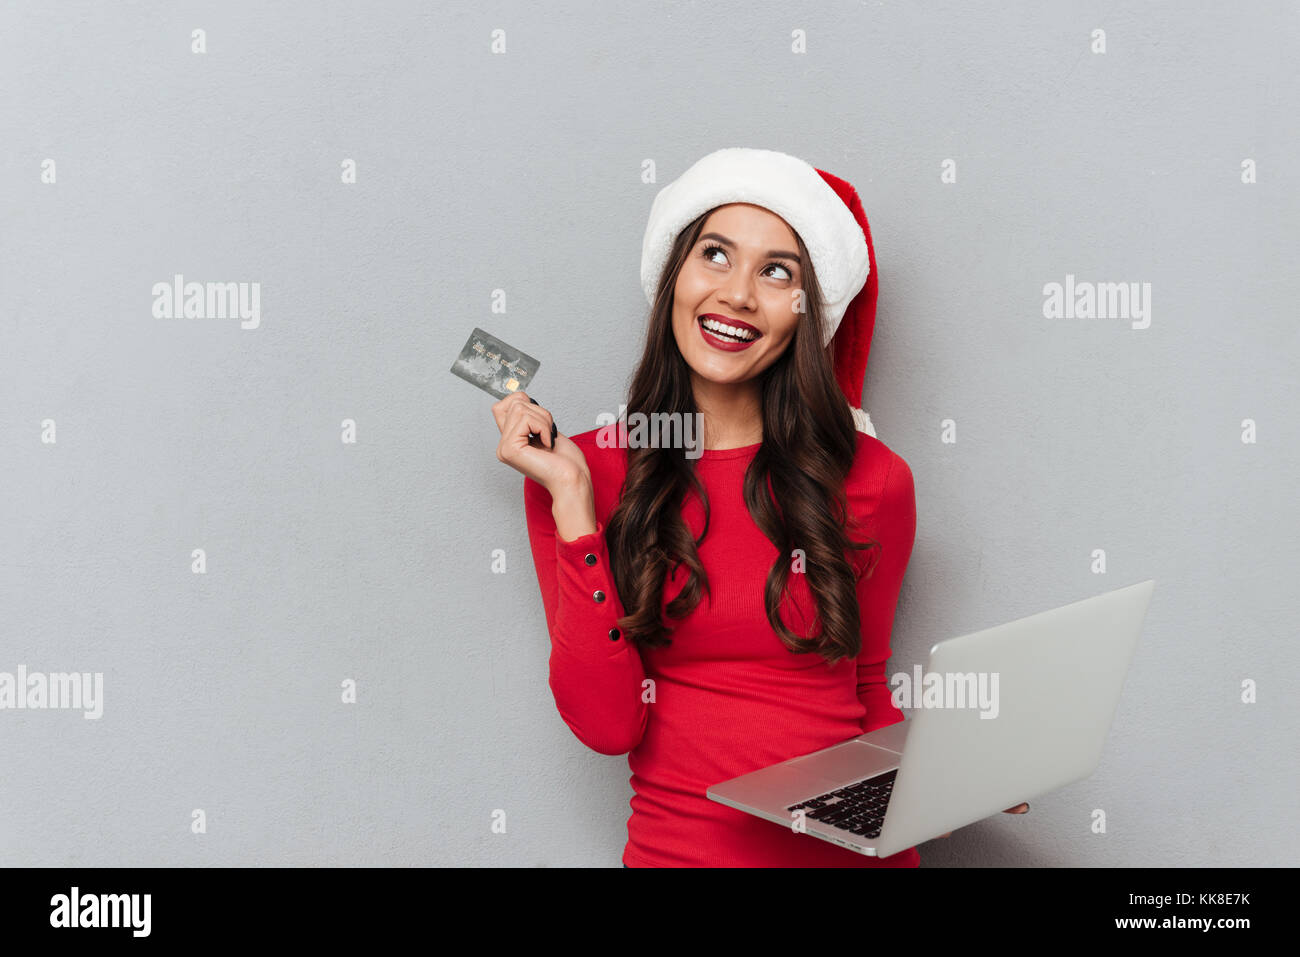 Charming brunette woman in Santa's hat and red blouse holding credit card and laptop computer, looking aside - Stock Image